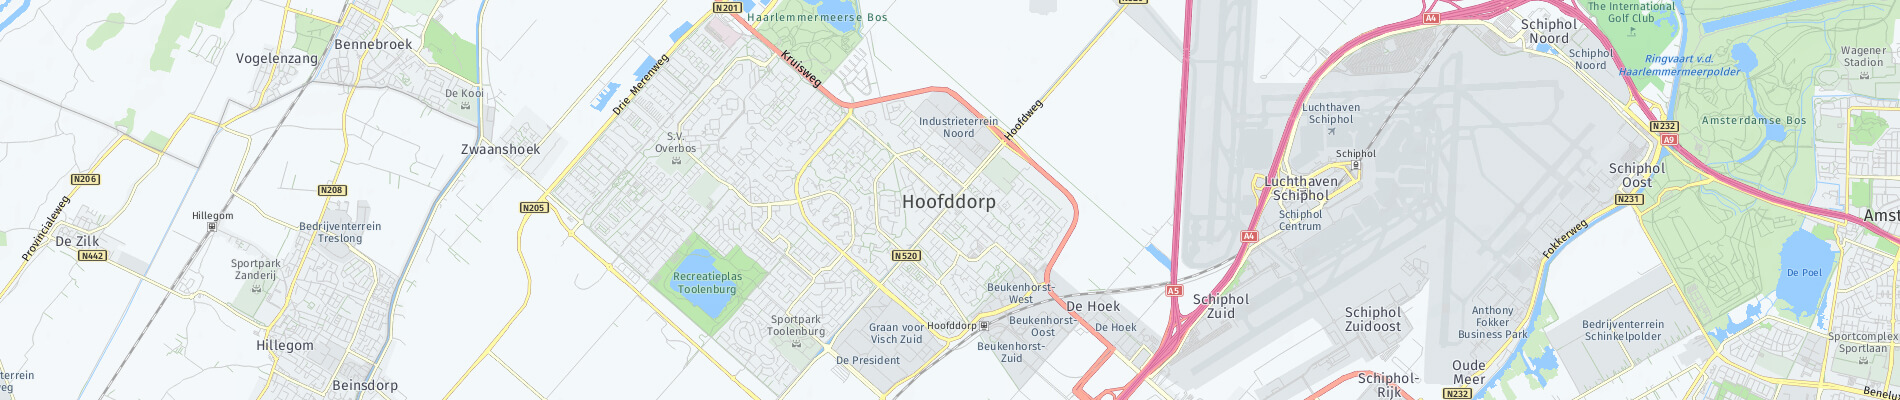 assets/images/cities/hoofddorp.jpg